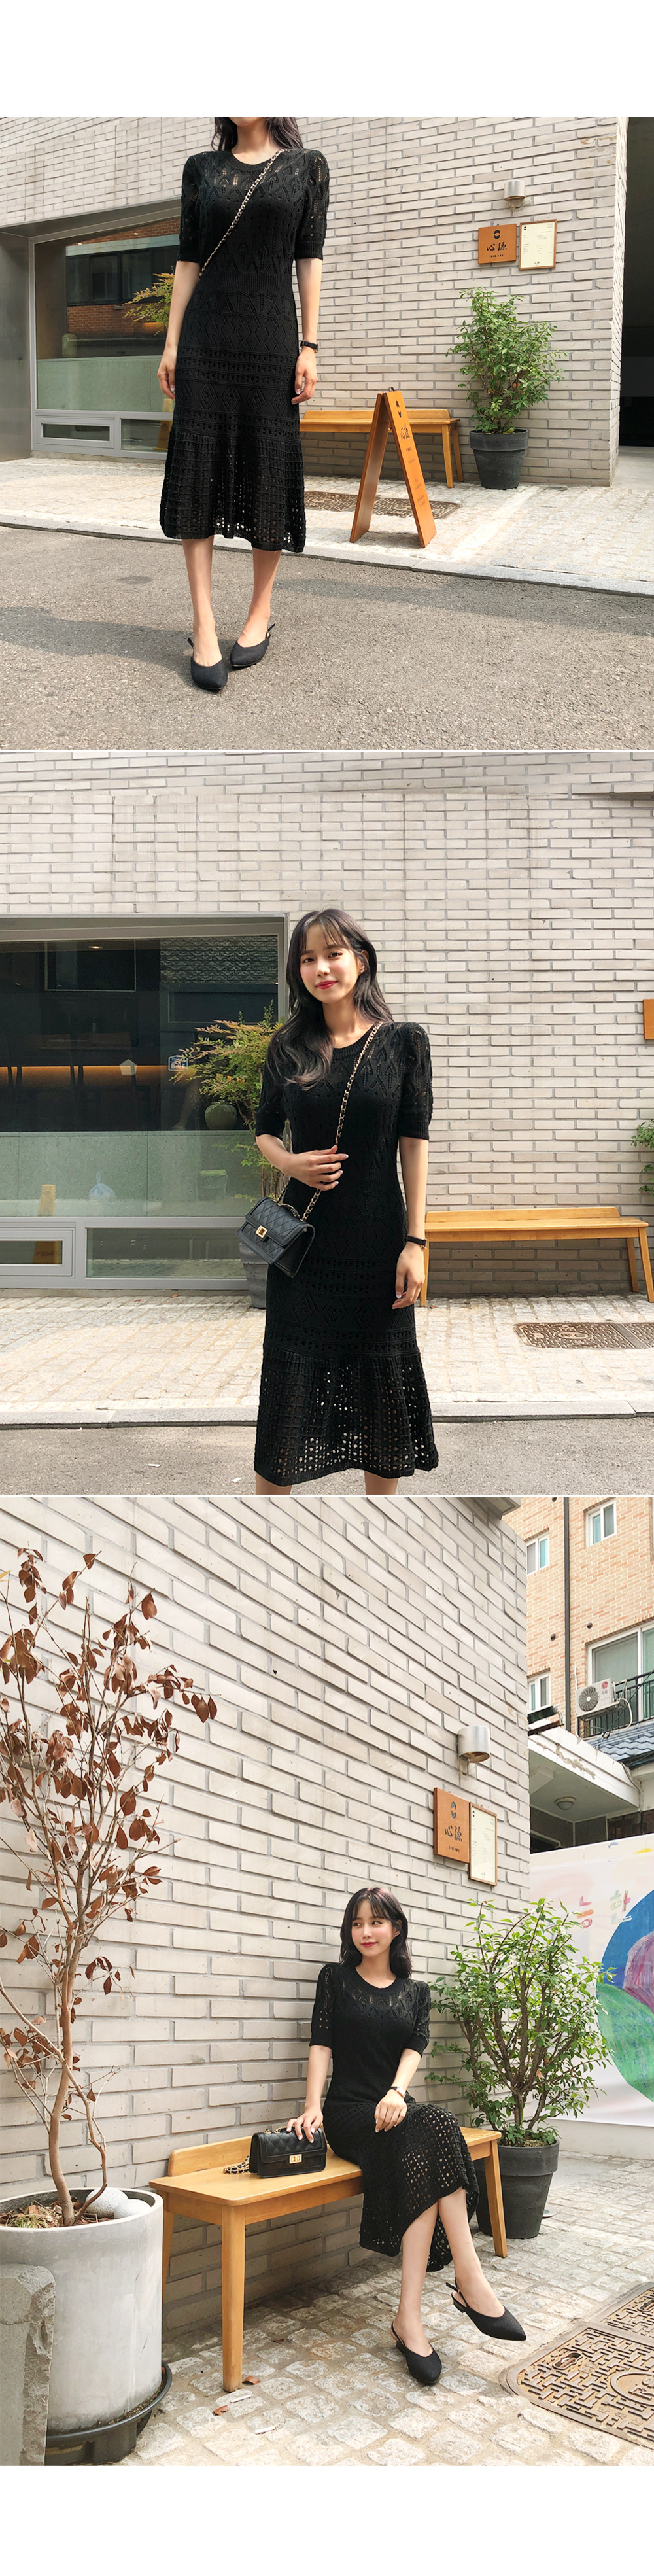 Simple mood knit dress + slip SET